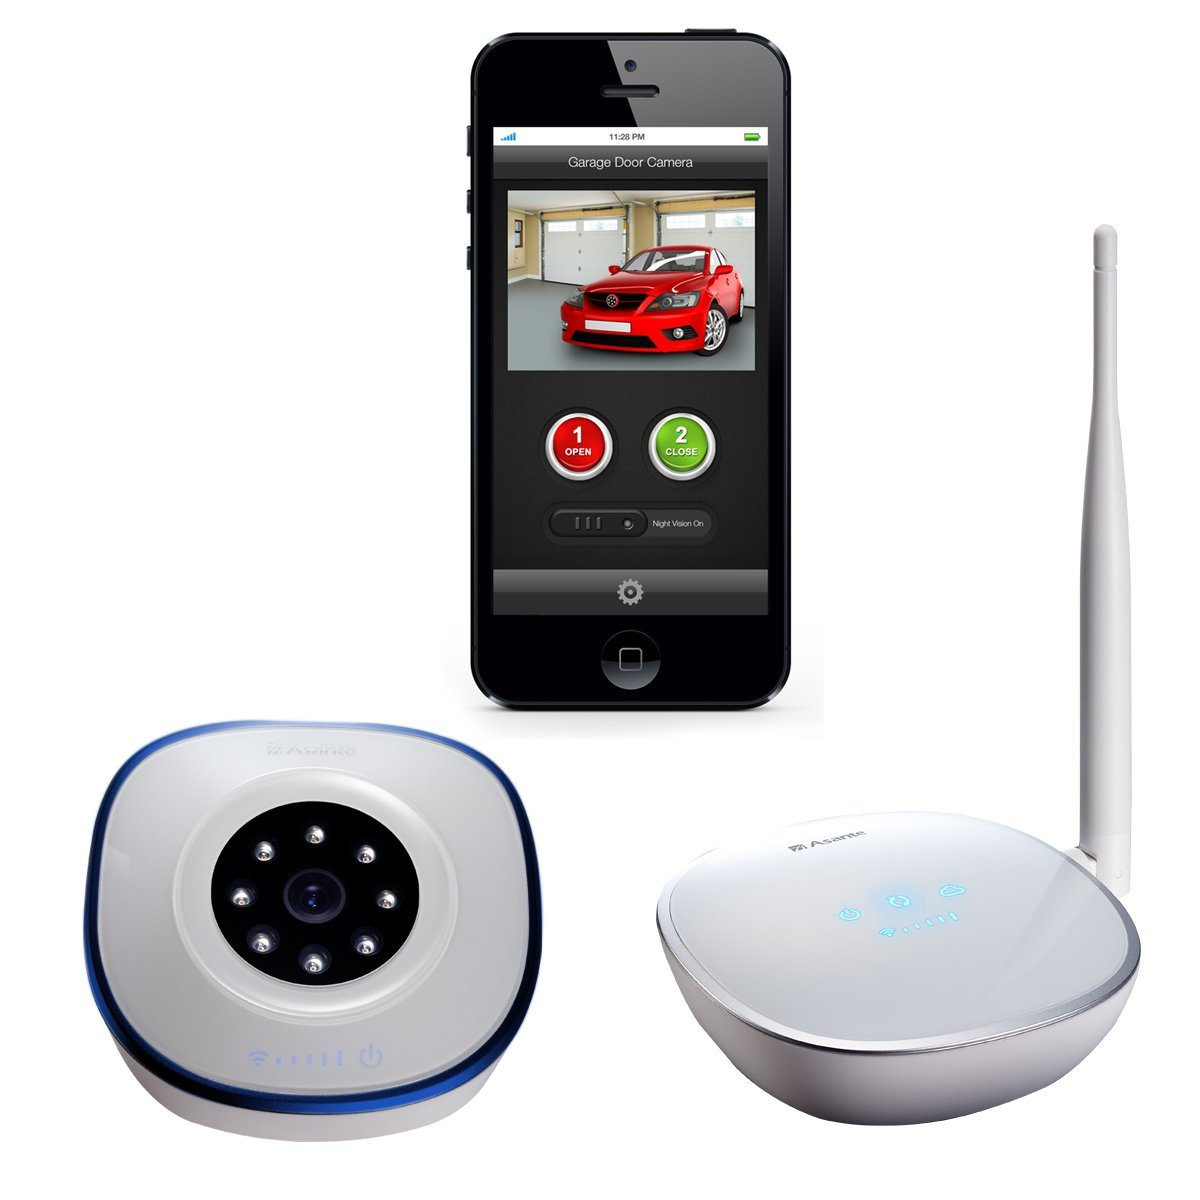 Smart home garage door controls smart home devices asante garage door opener with camera kit rubansaba